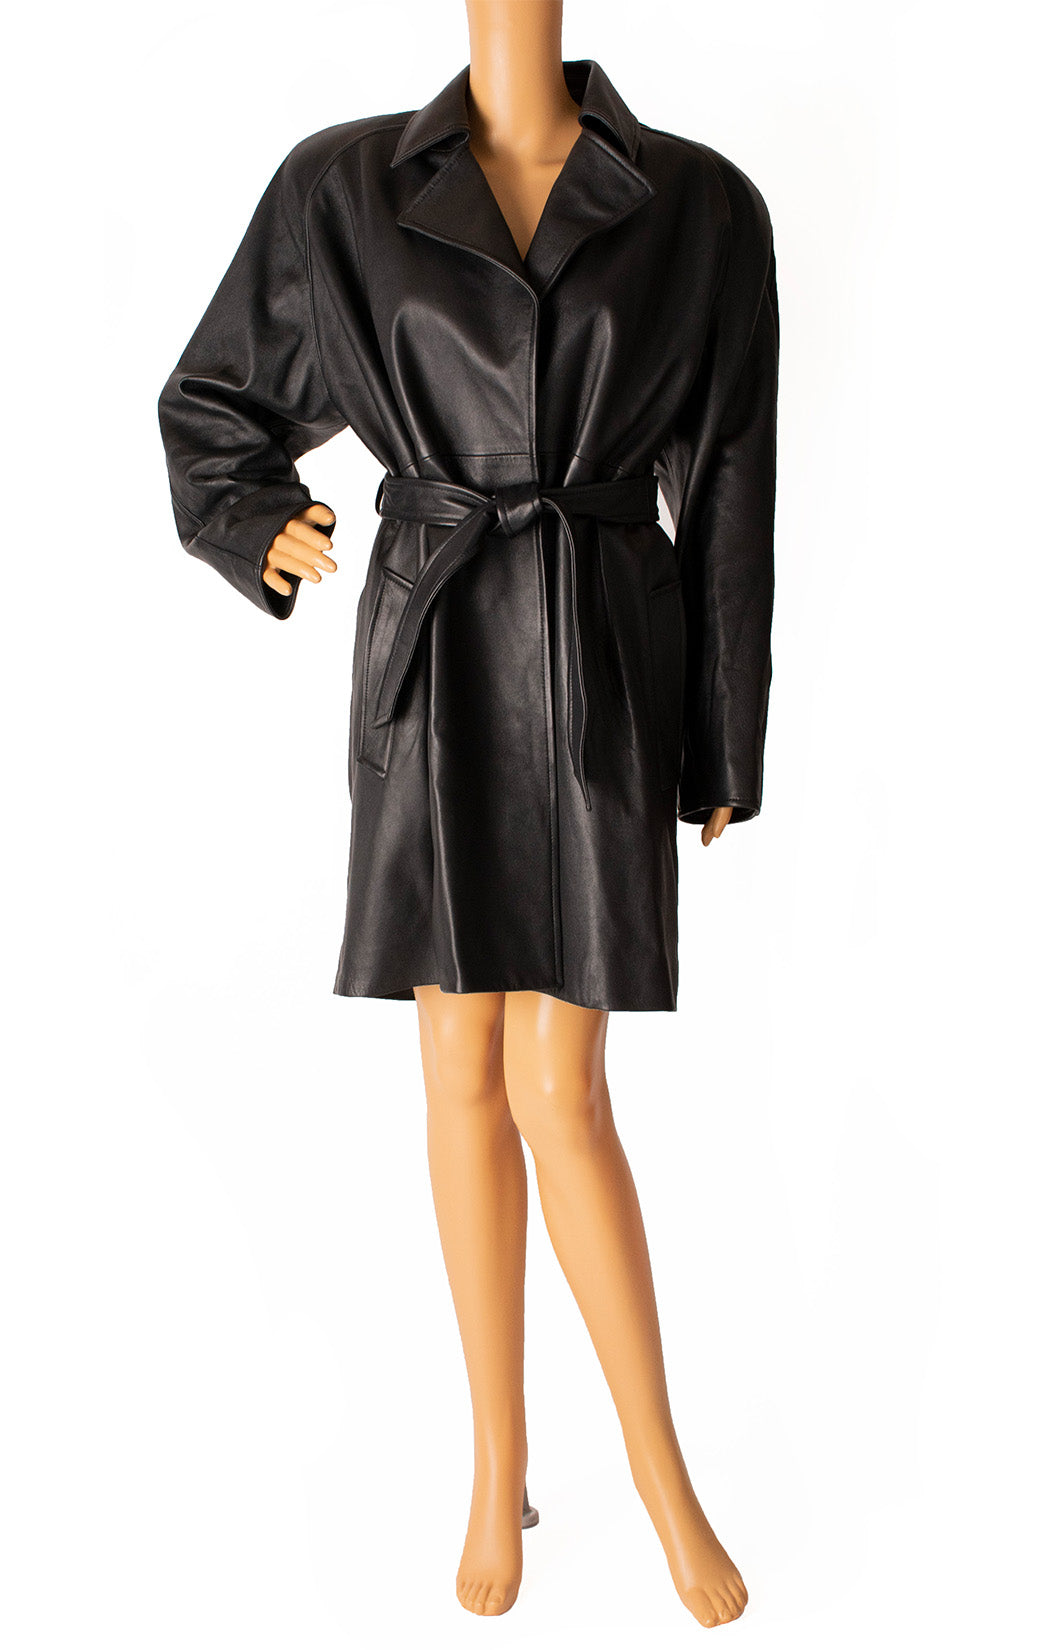 Front view of BALENCIAGA with tags Leather coat Size: FR 34 (comparable to US 2-4)